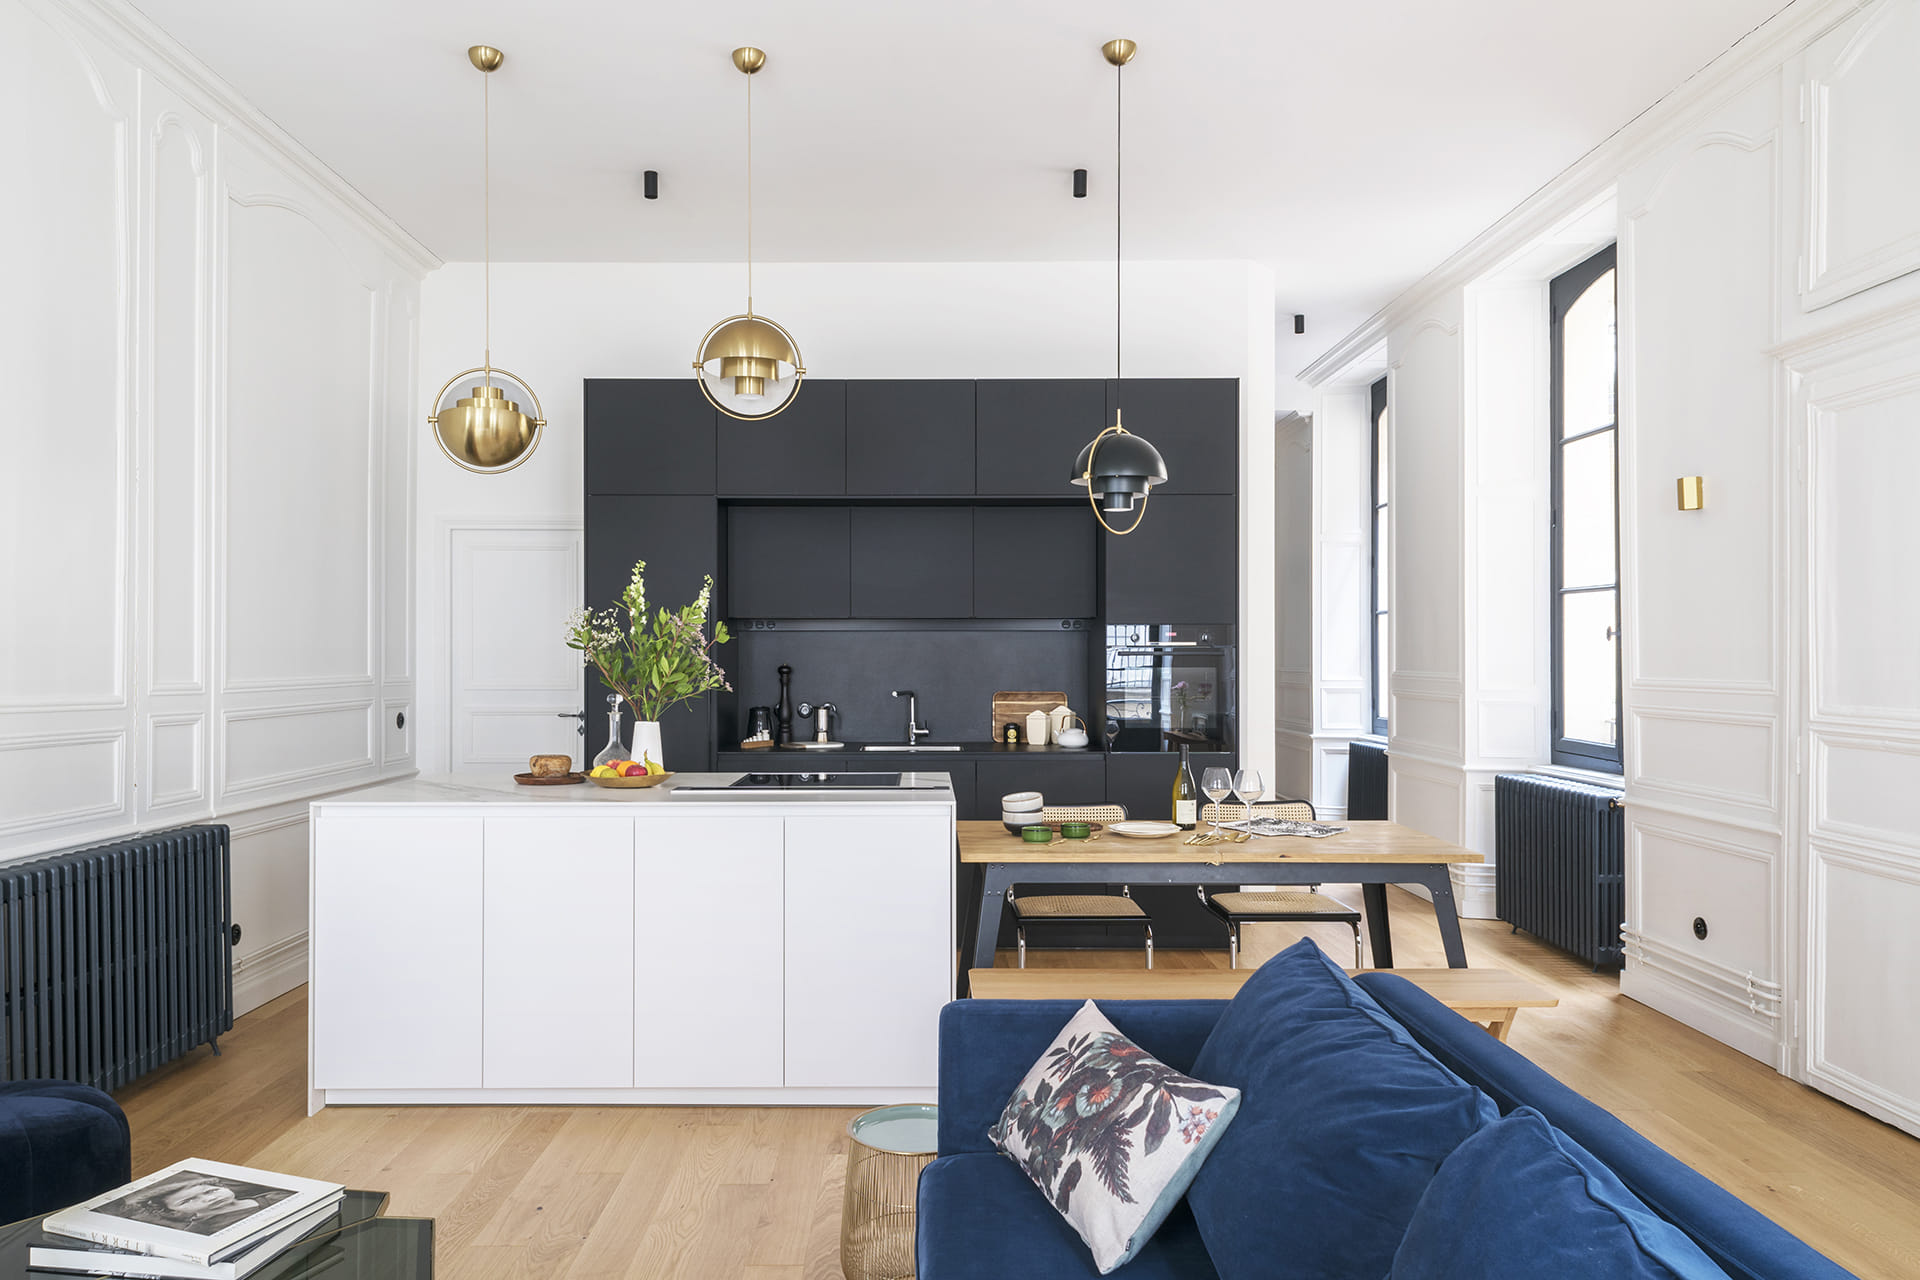 Santos black and white kitchen with island which opens out to the living-dining area